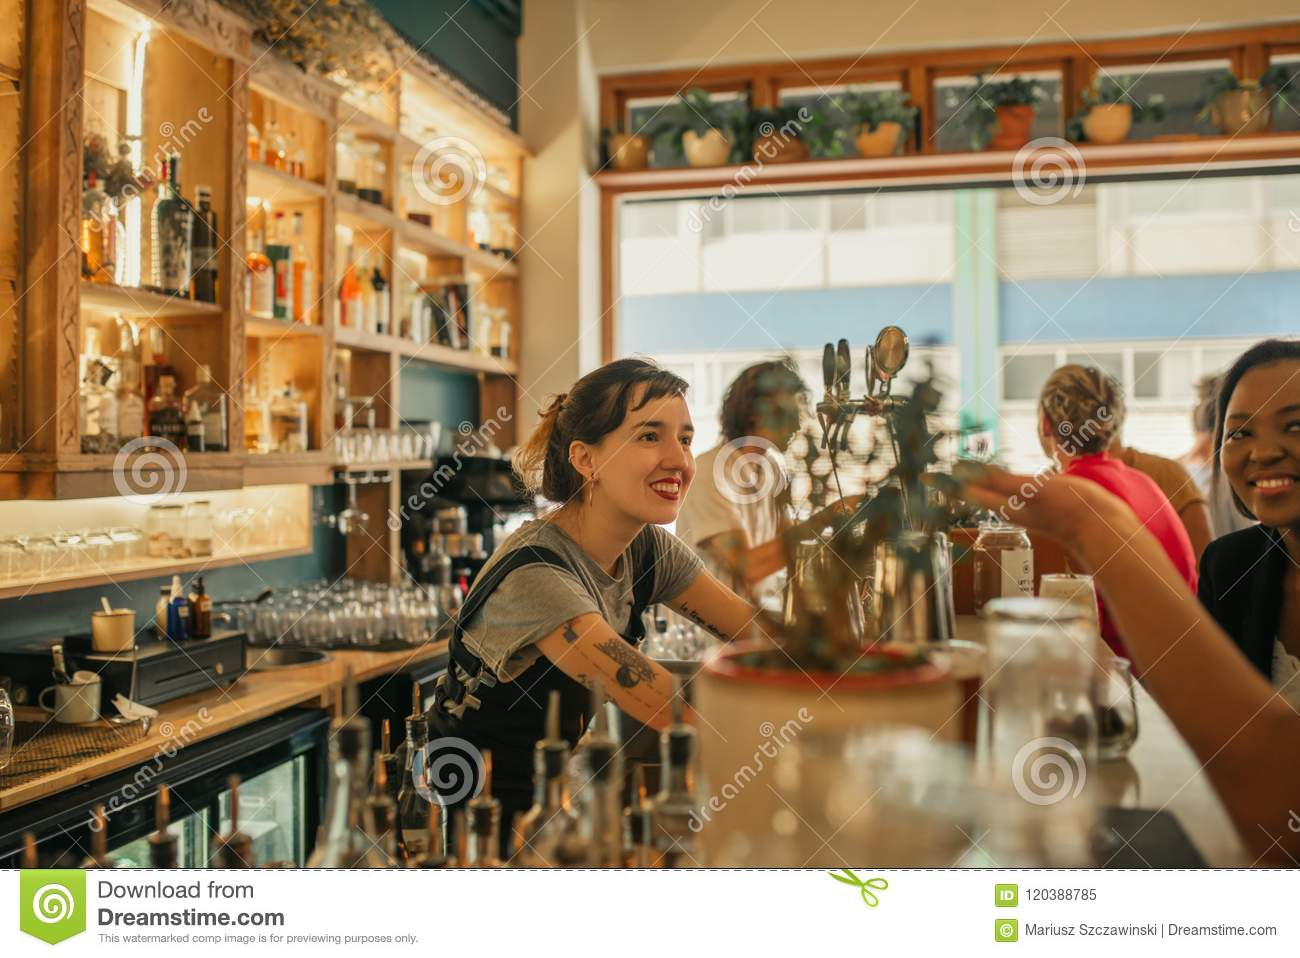 Smiling female bartender talking with customers at a bar counter